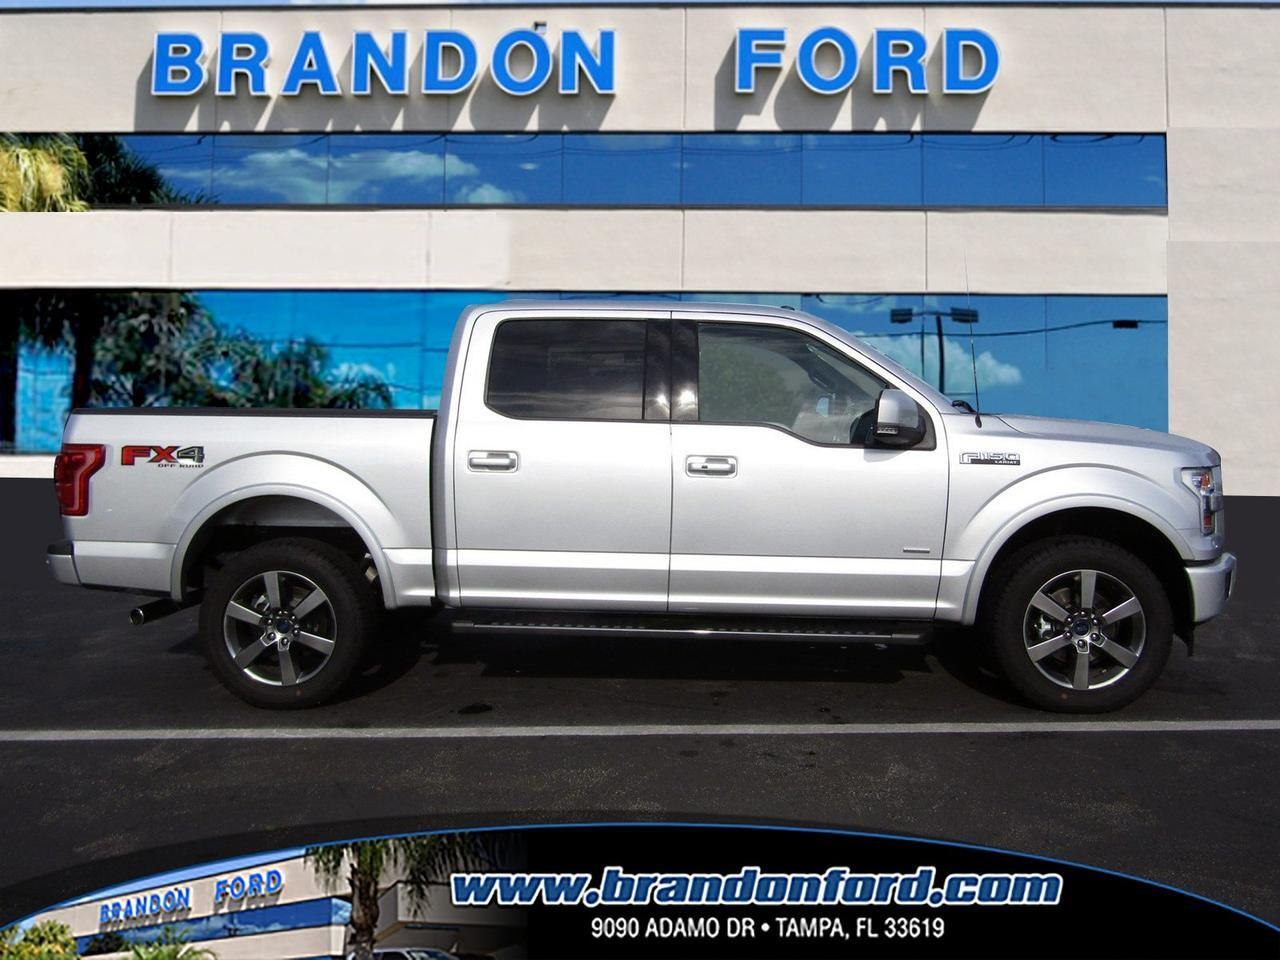 ford credit tampa 2018 2019 2020 ford cars